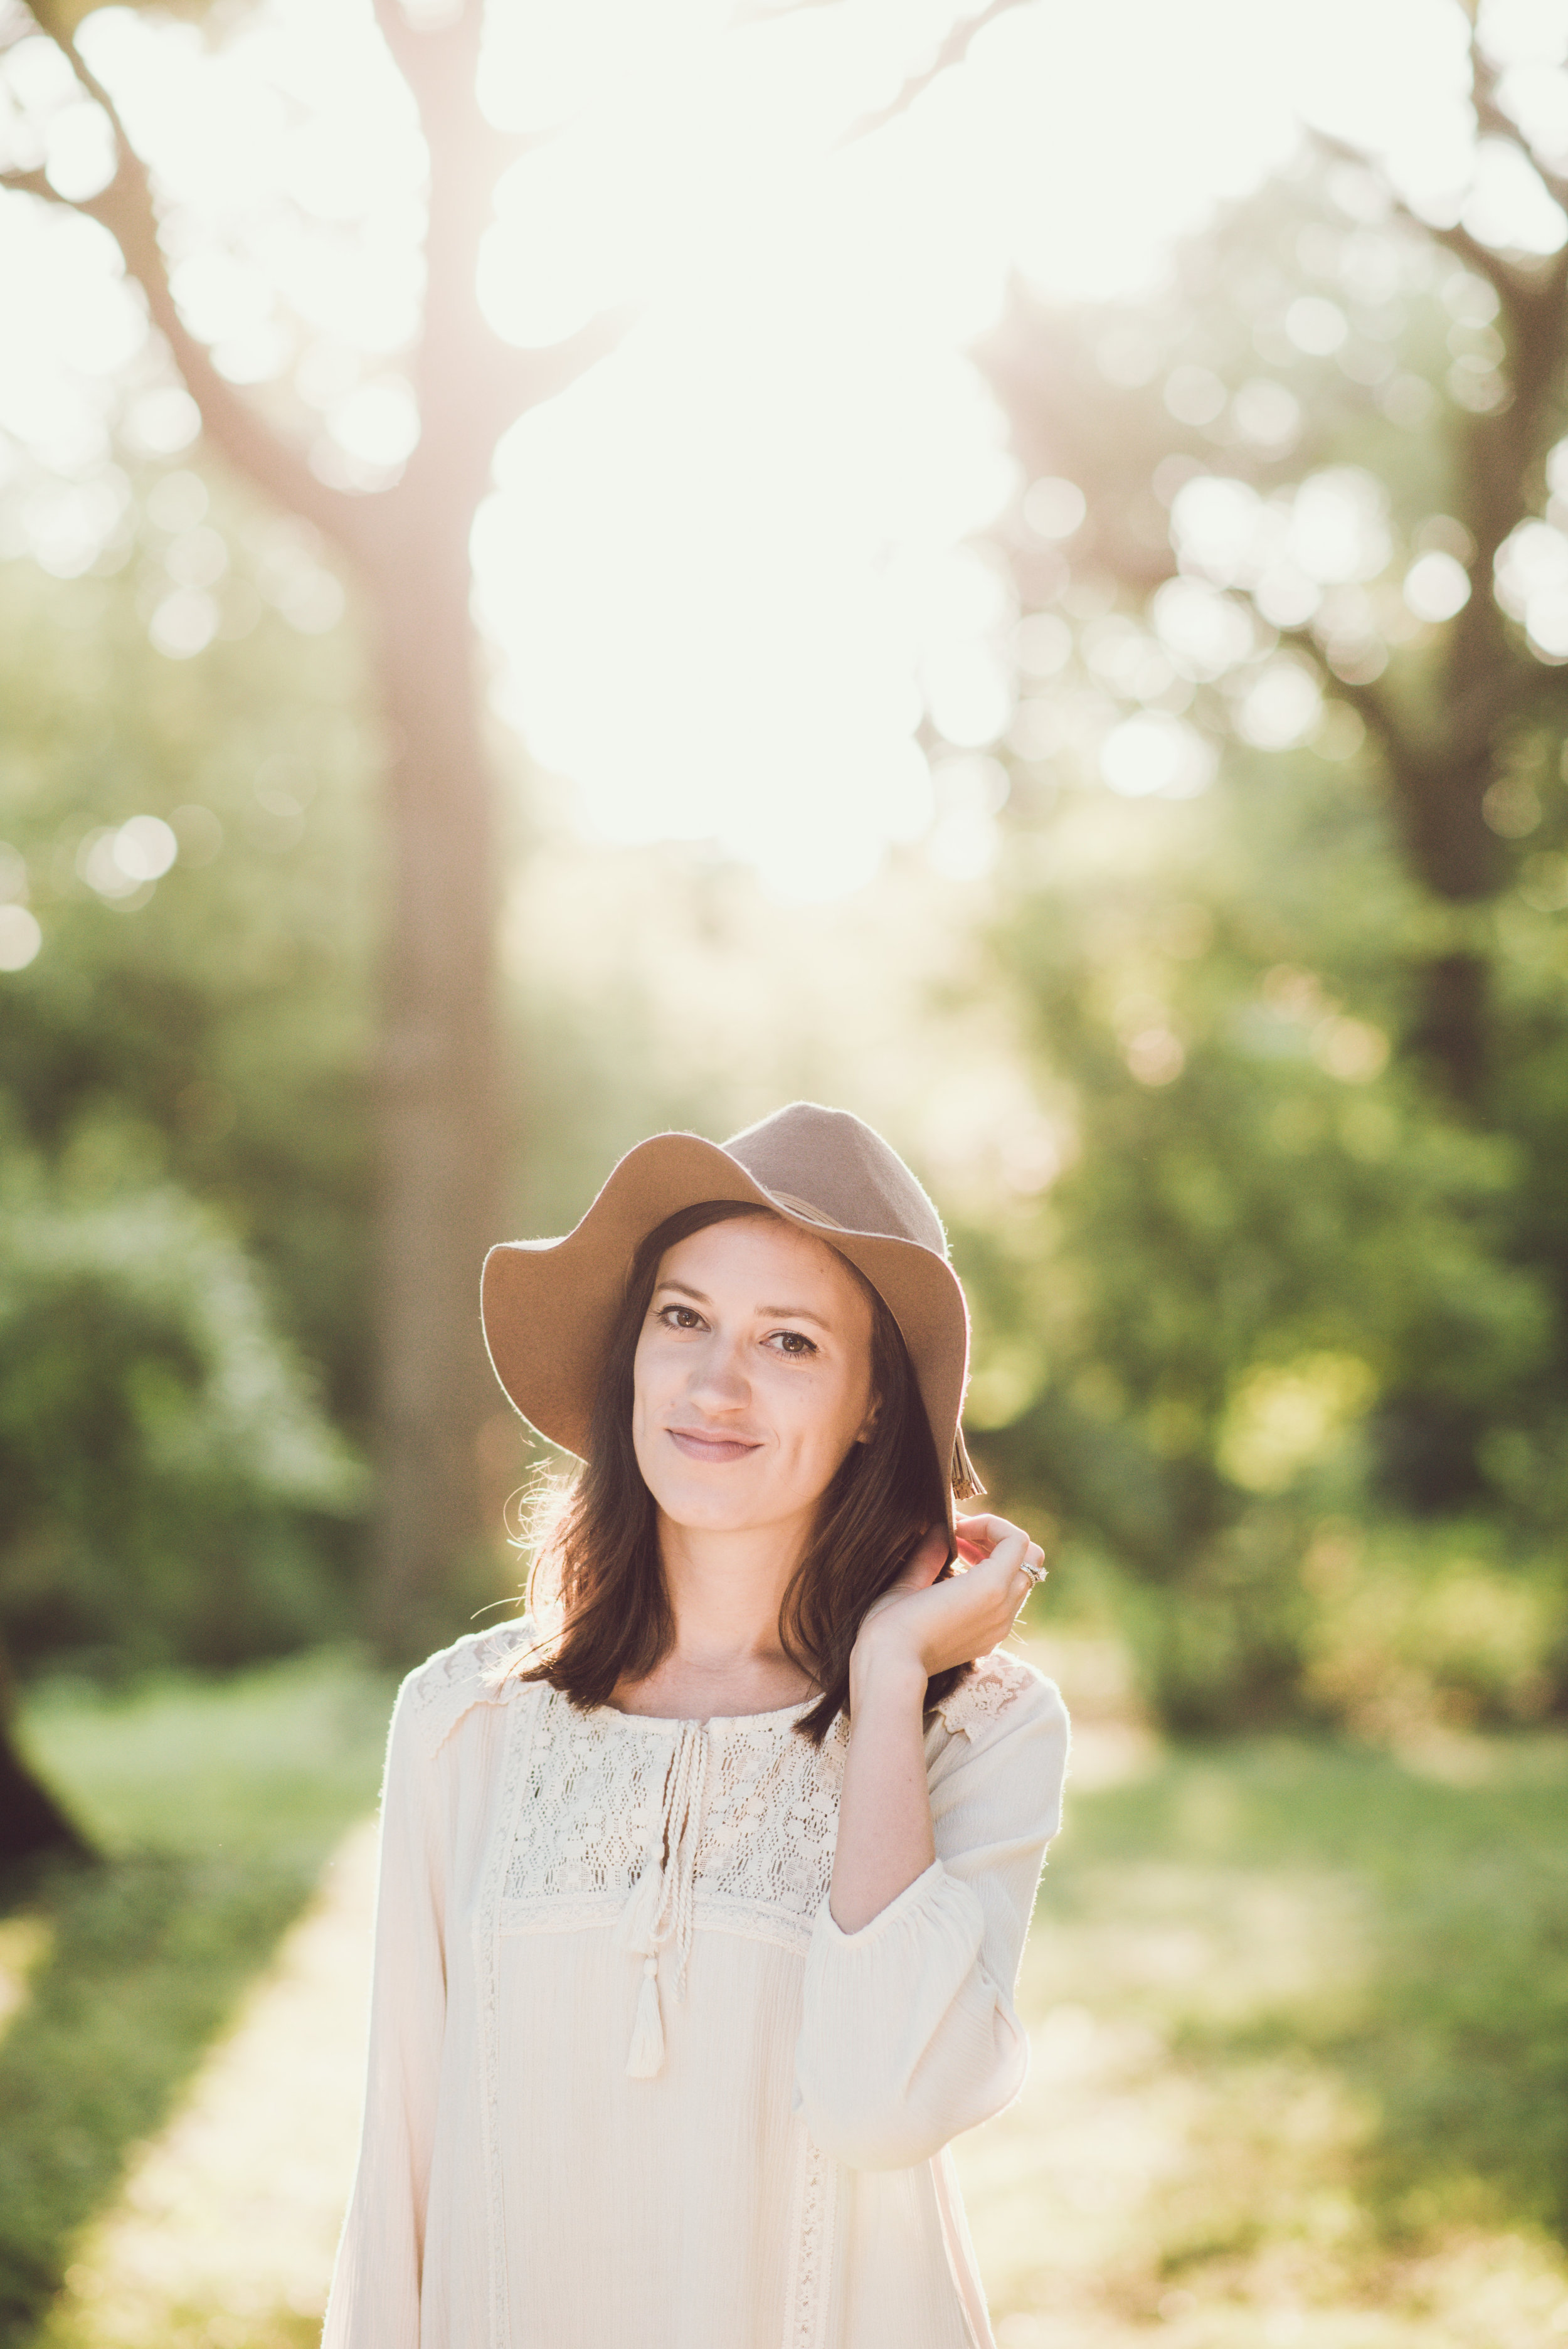 This is my wife, Allison. We decided to go out to the rose garden one morning and she looked beautiful in the light. She's absolutely amazing and I wouldn't be half the person I am without her.